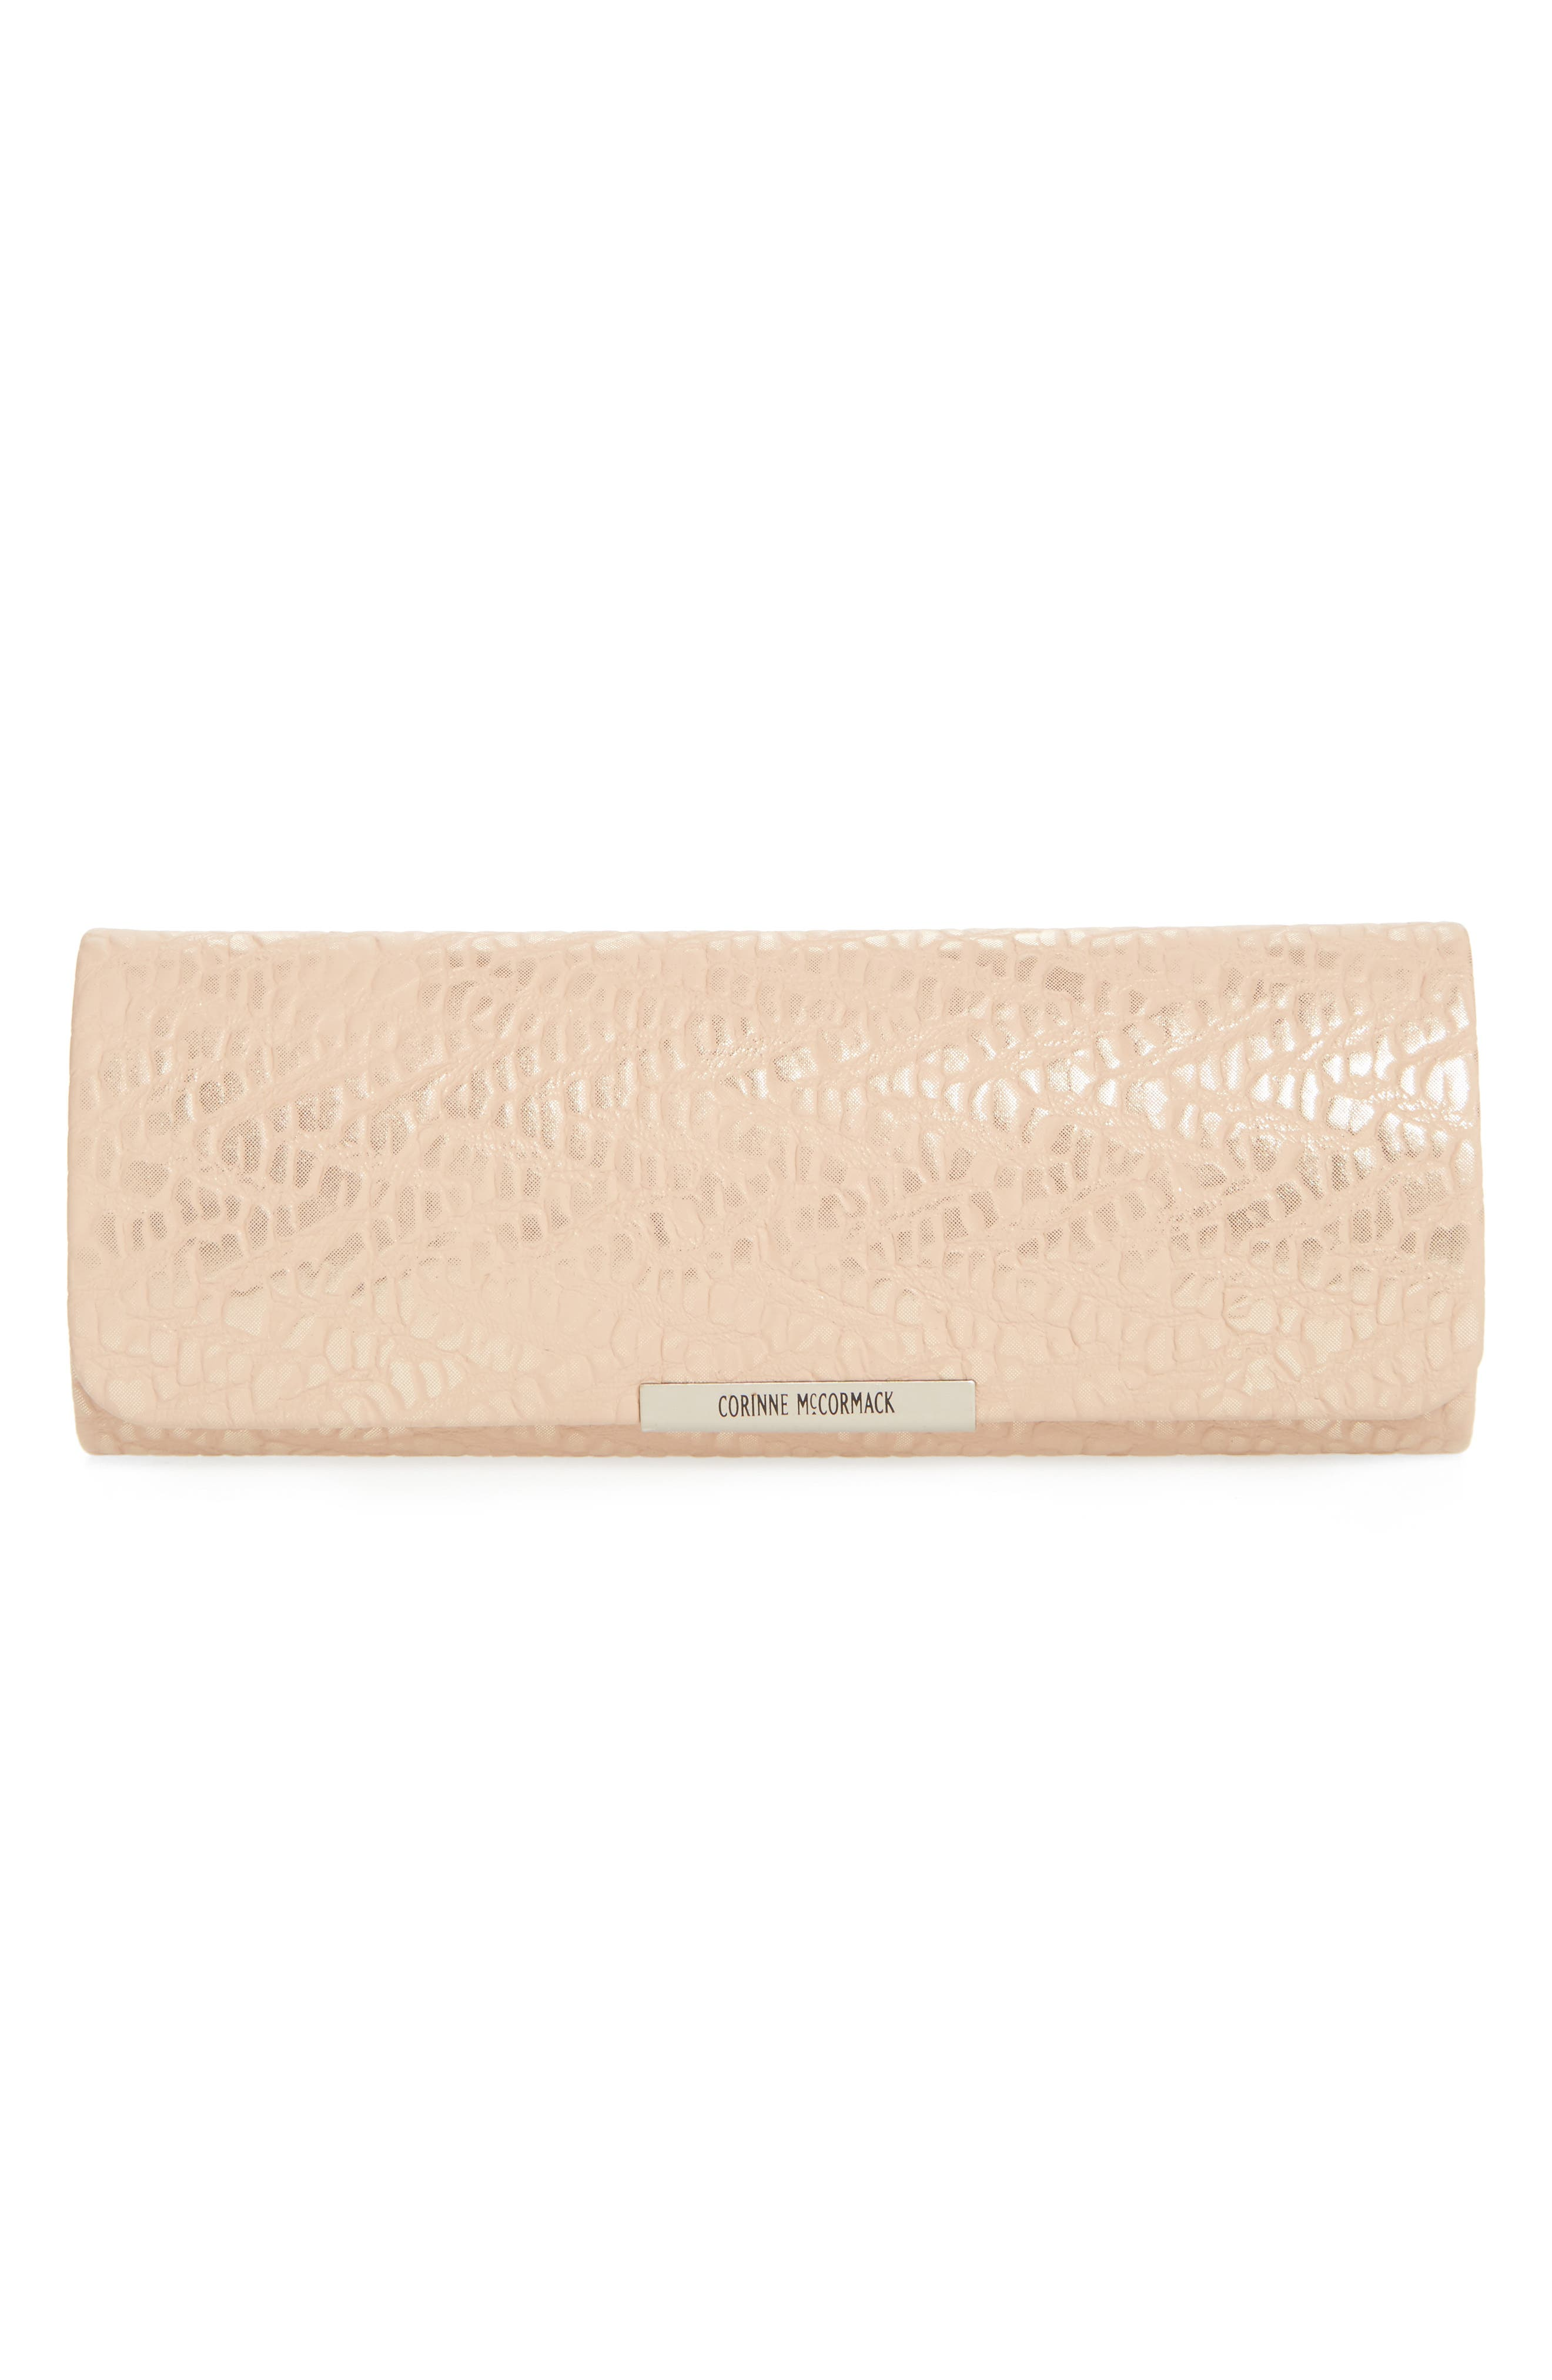 Corinne McCormack Oval Reading Glasses Case